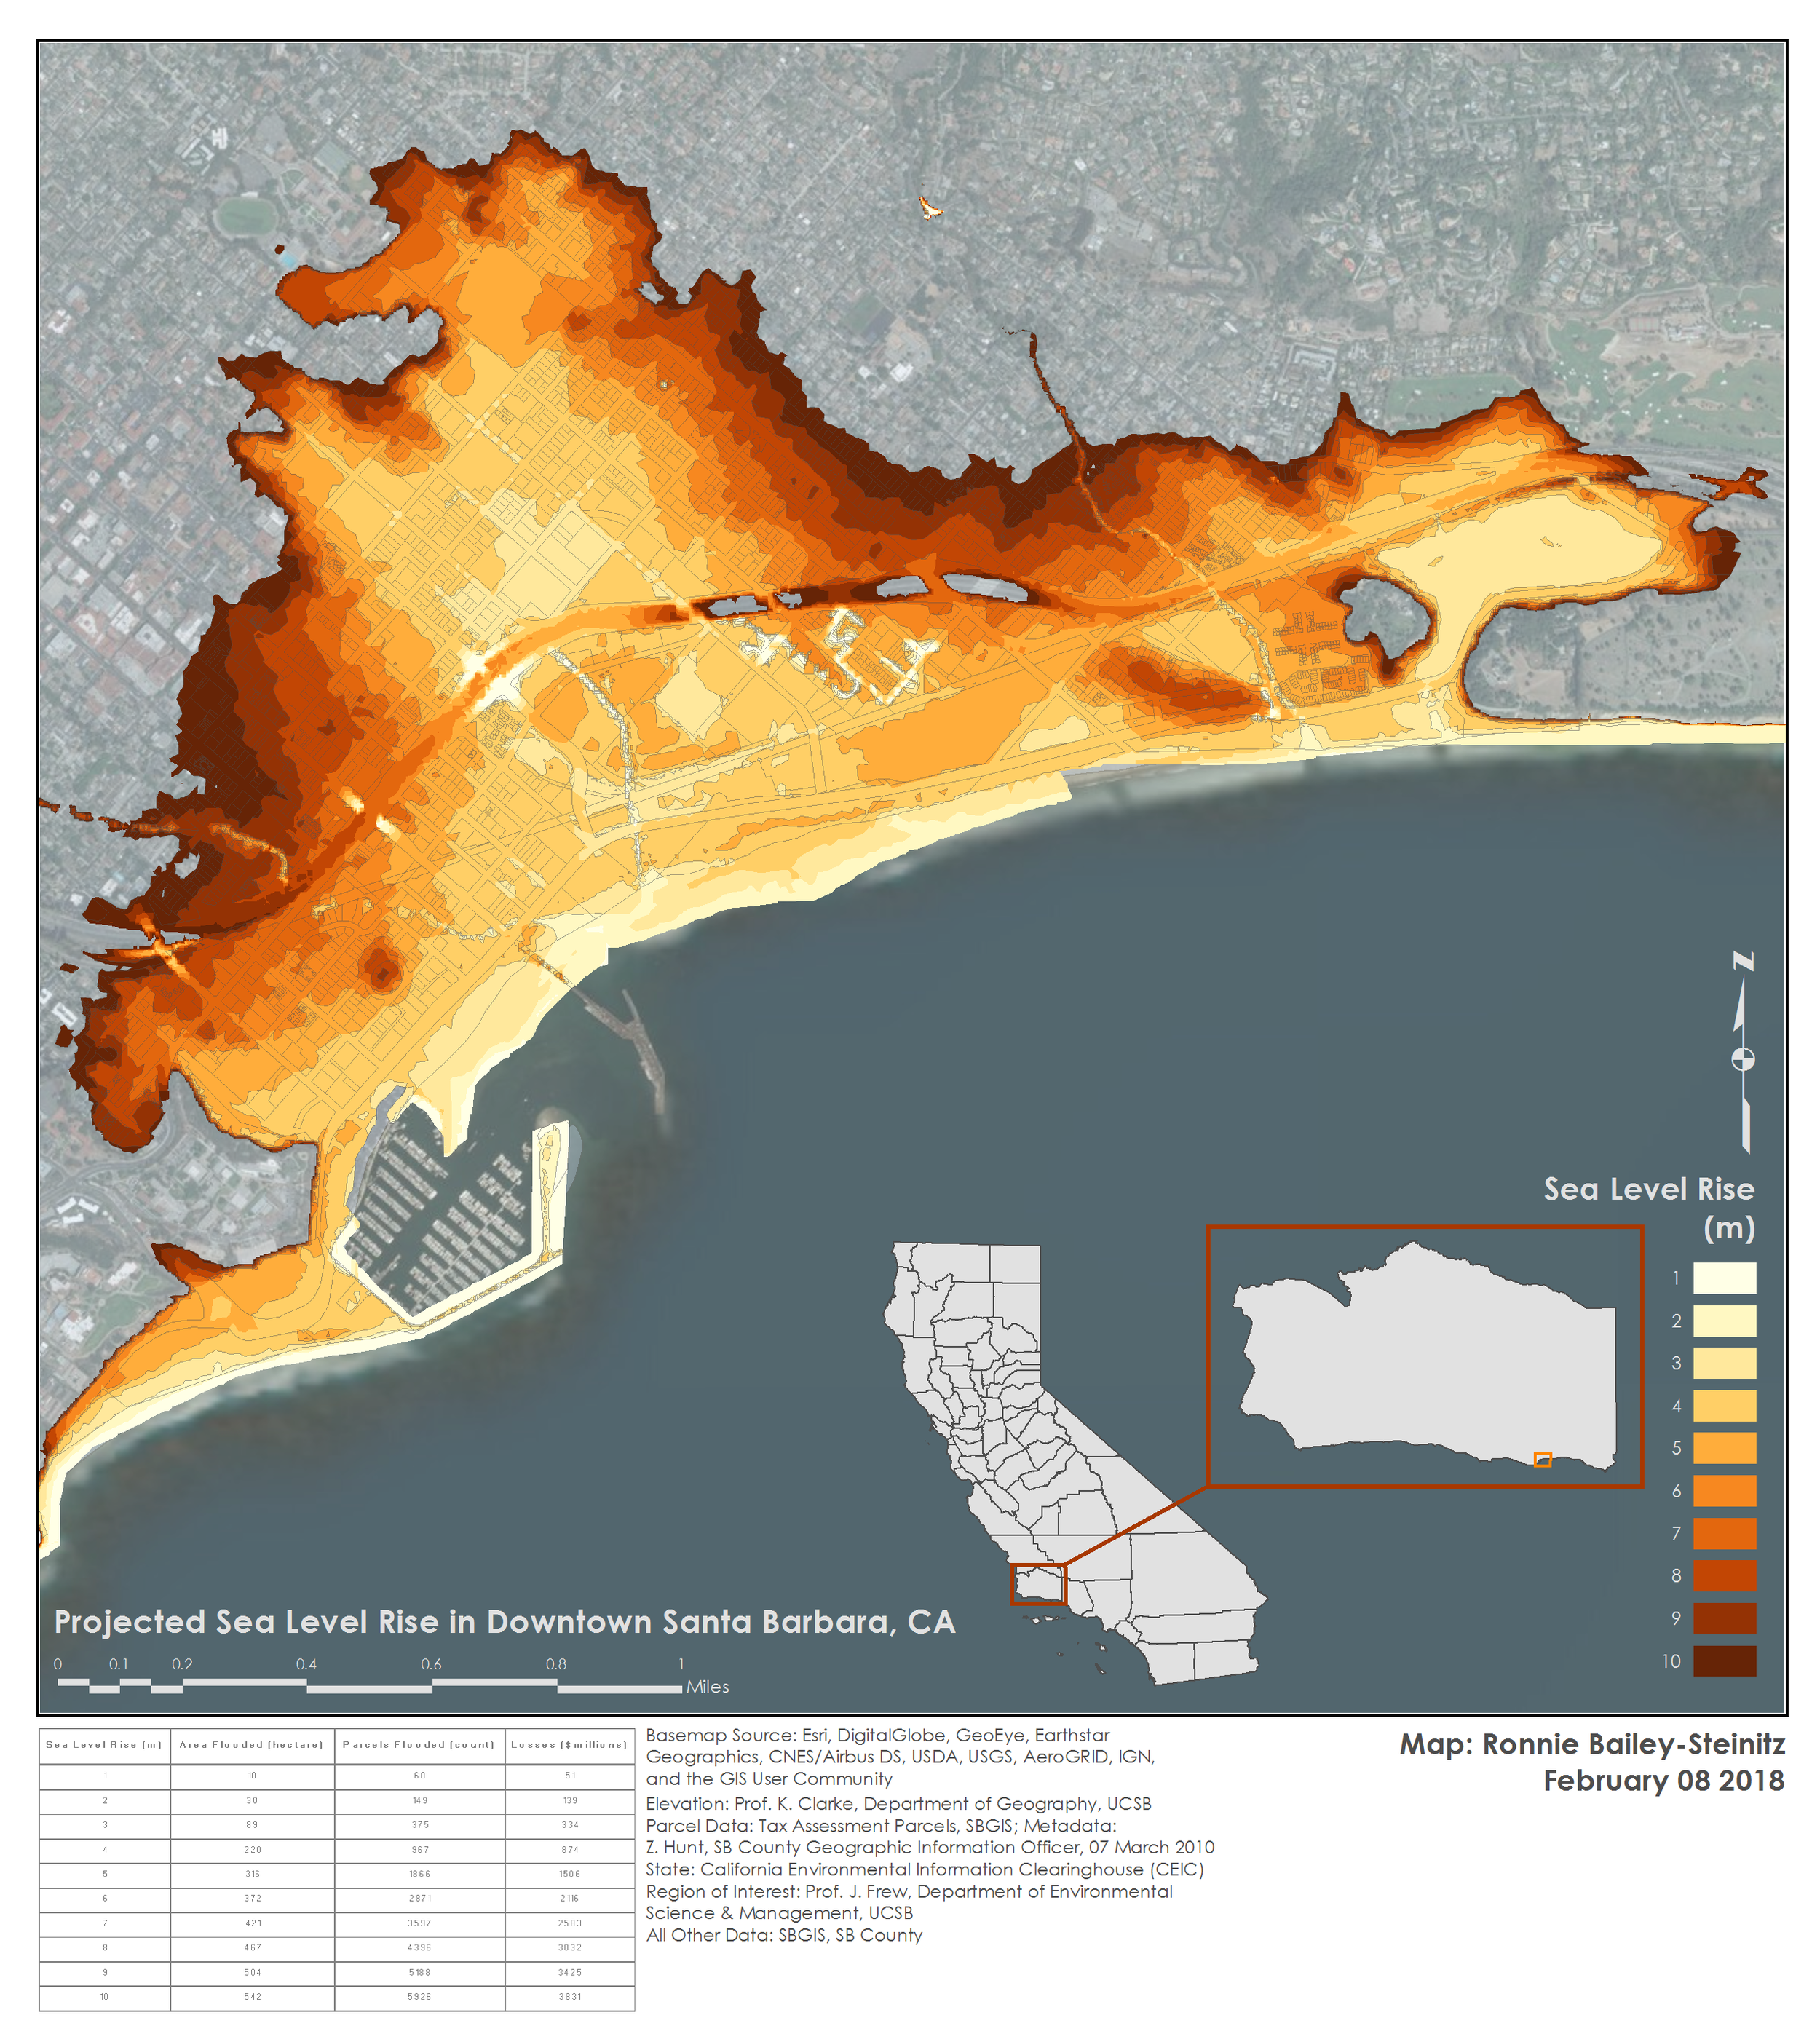 Sea Level Rise in Santa Barbara - GIS analysis and modeling, Winter 2018